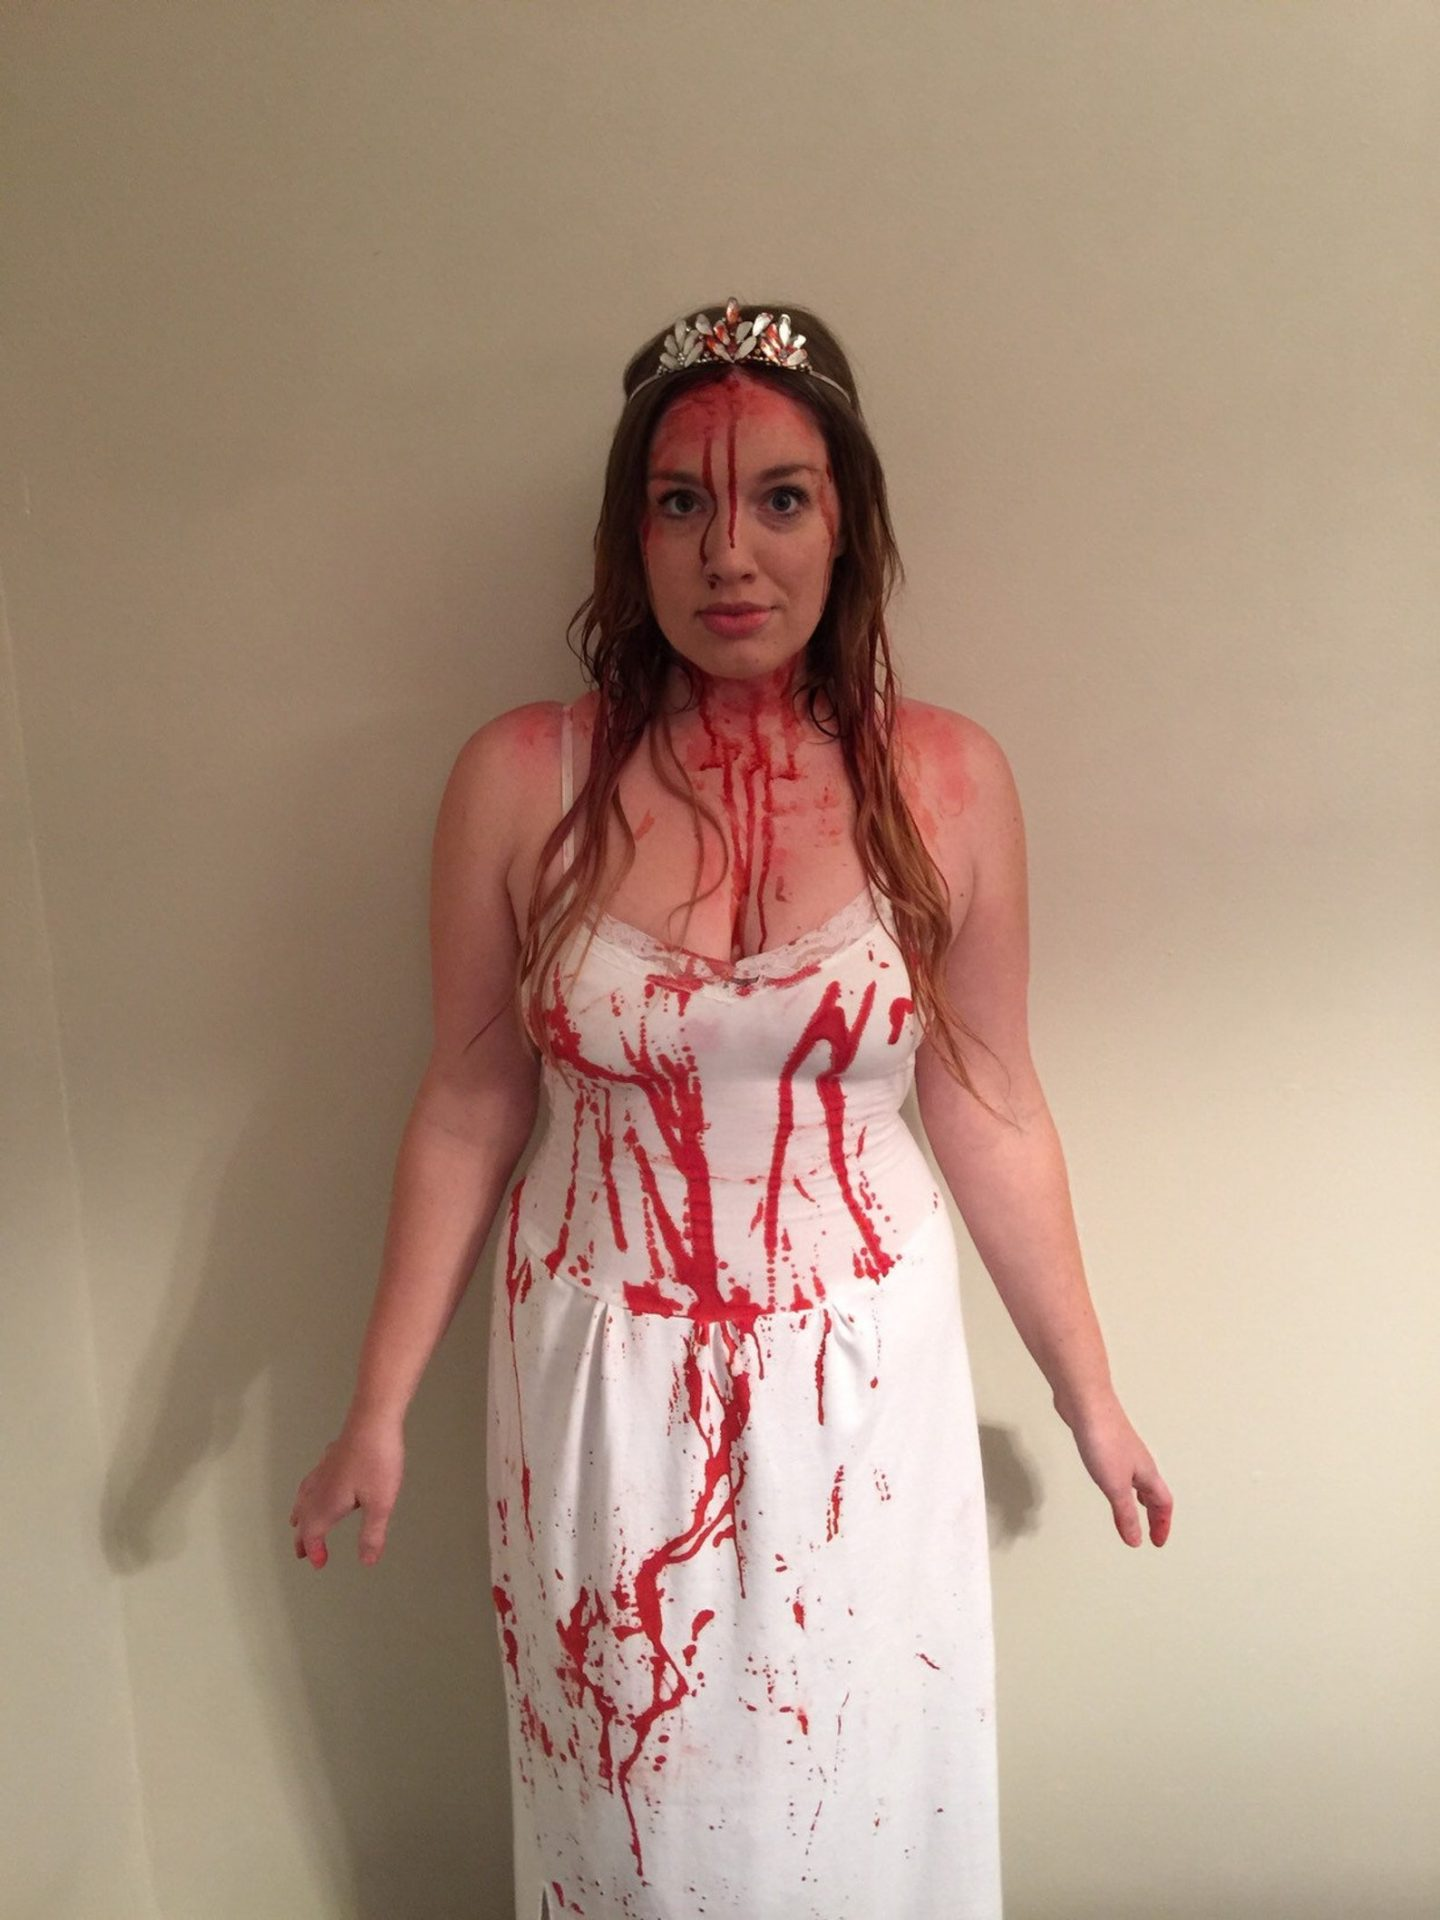 Bloody Carrie Halloween costume for women